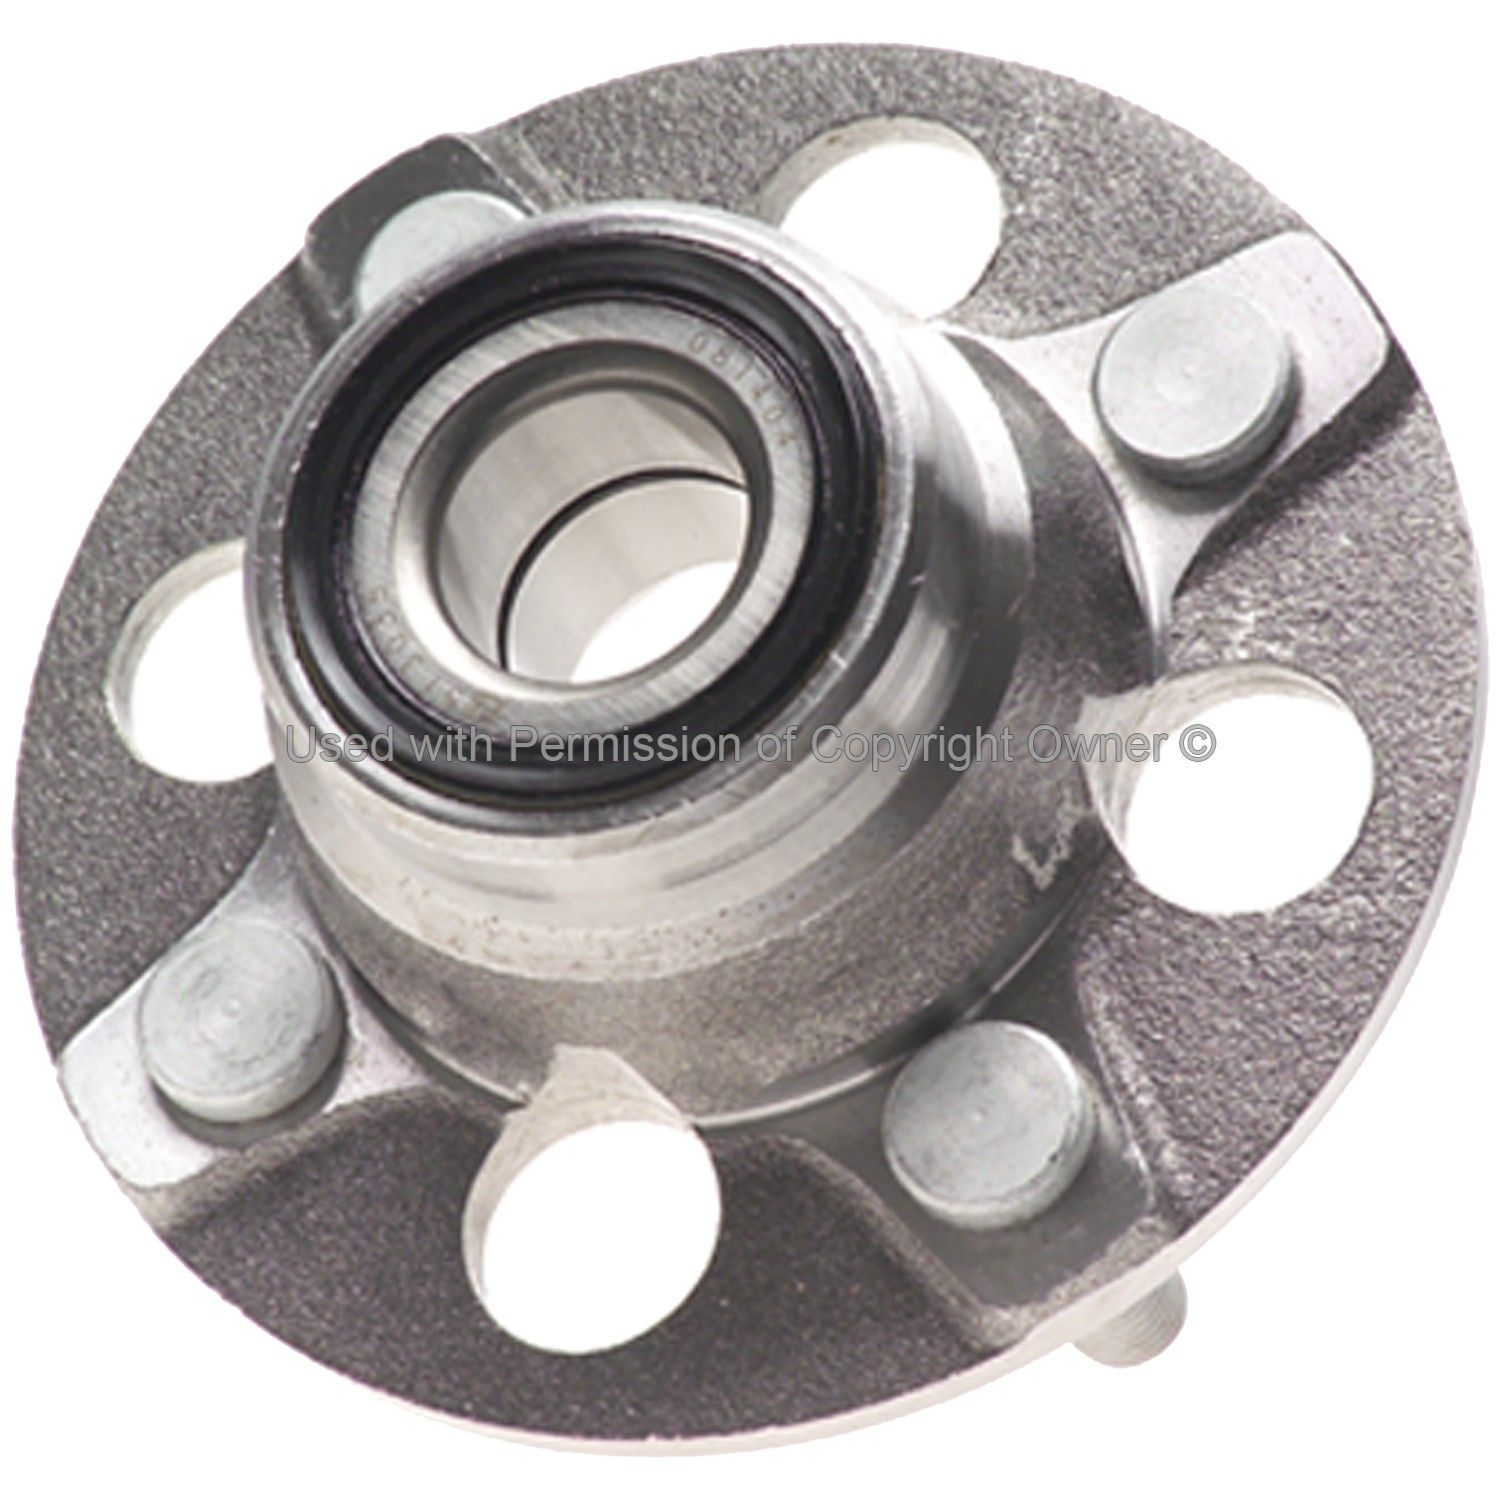 1997 Acura EL Wheel Bearing and Hub Assembly - Rear (MPA WH513035) Wheel Hub  Assembly Axle Nut Torque Spec: N/R ..